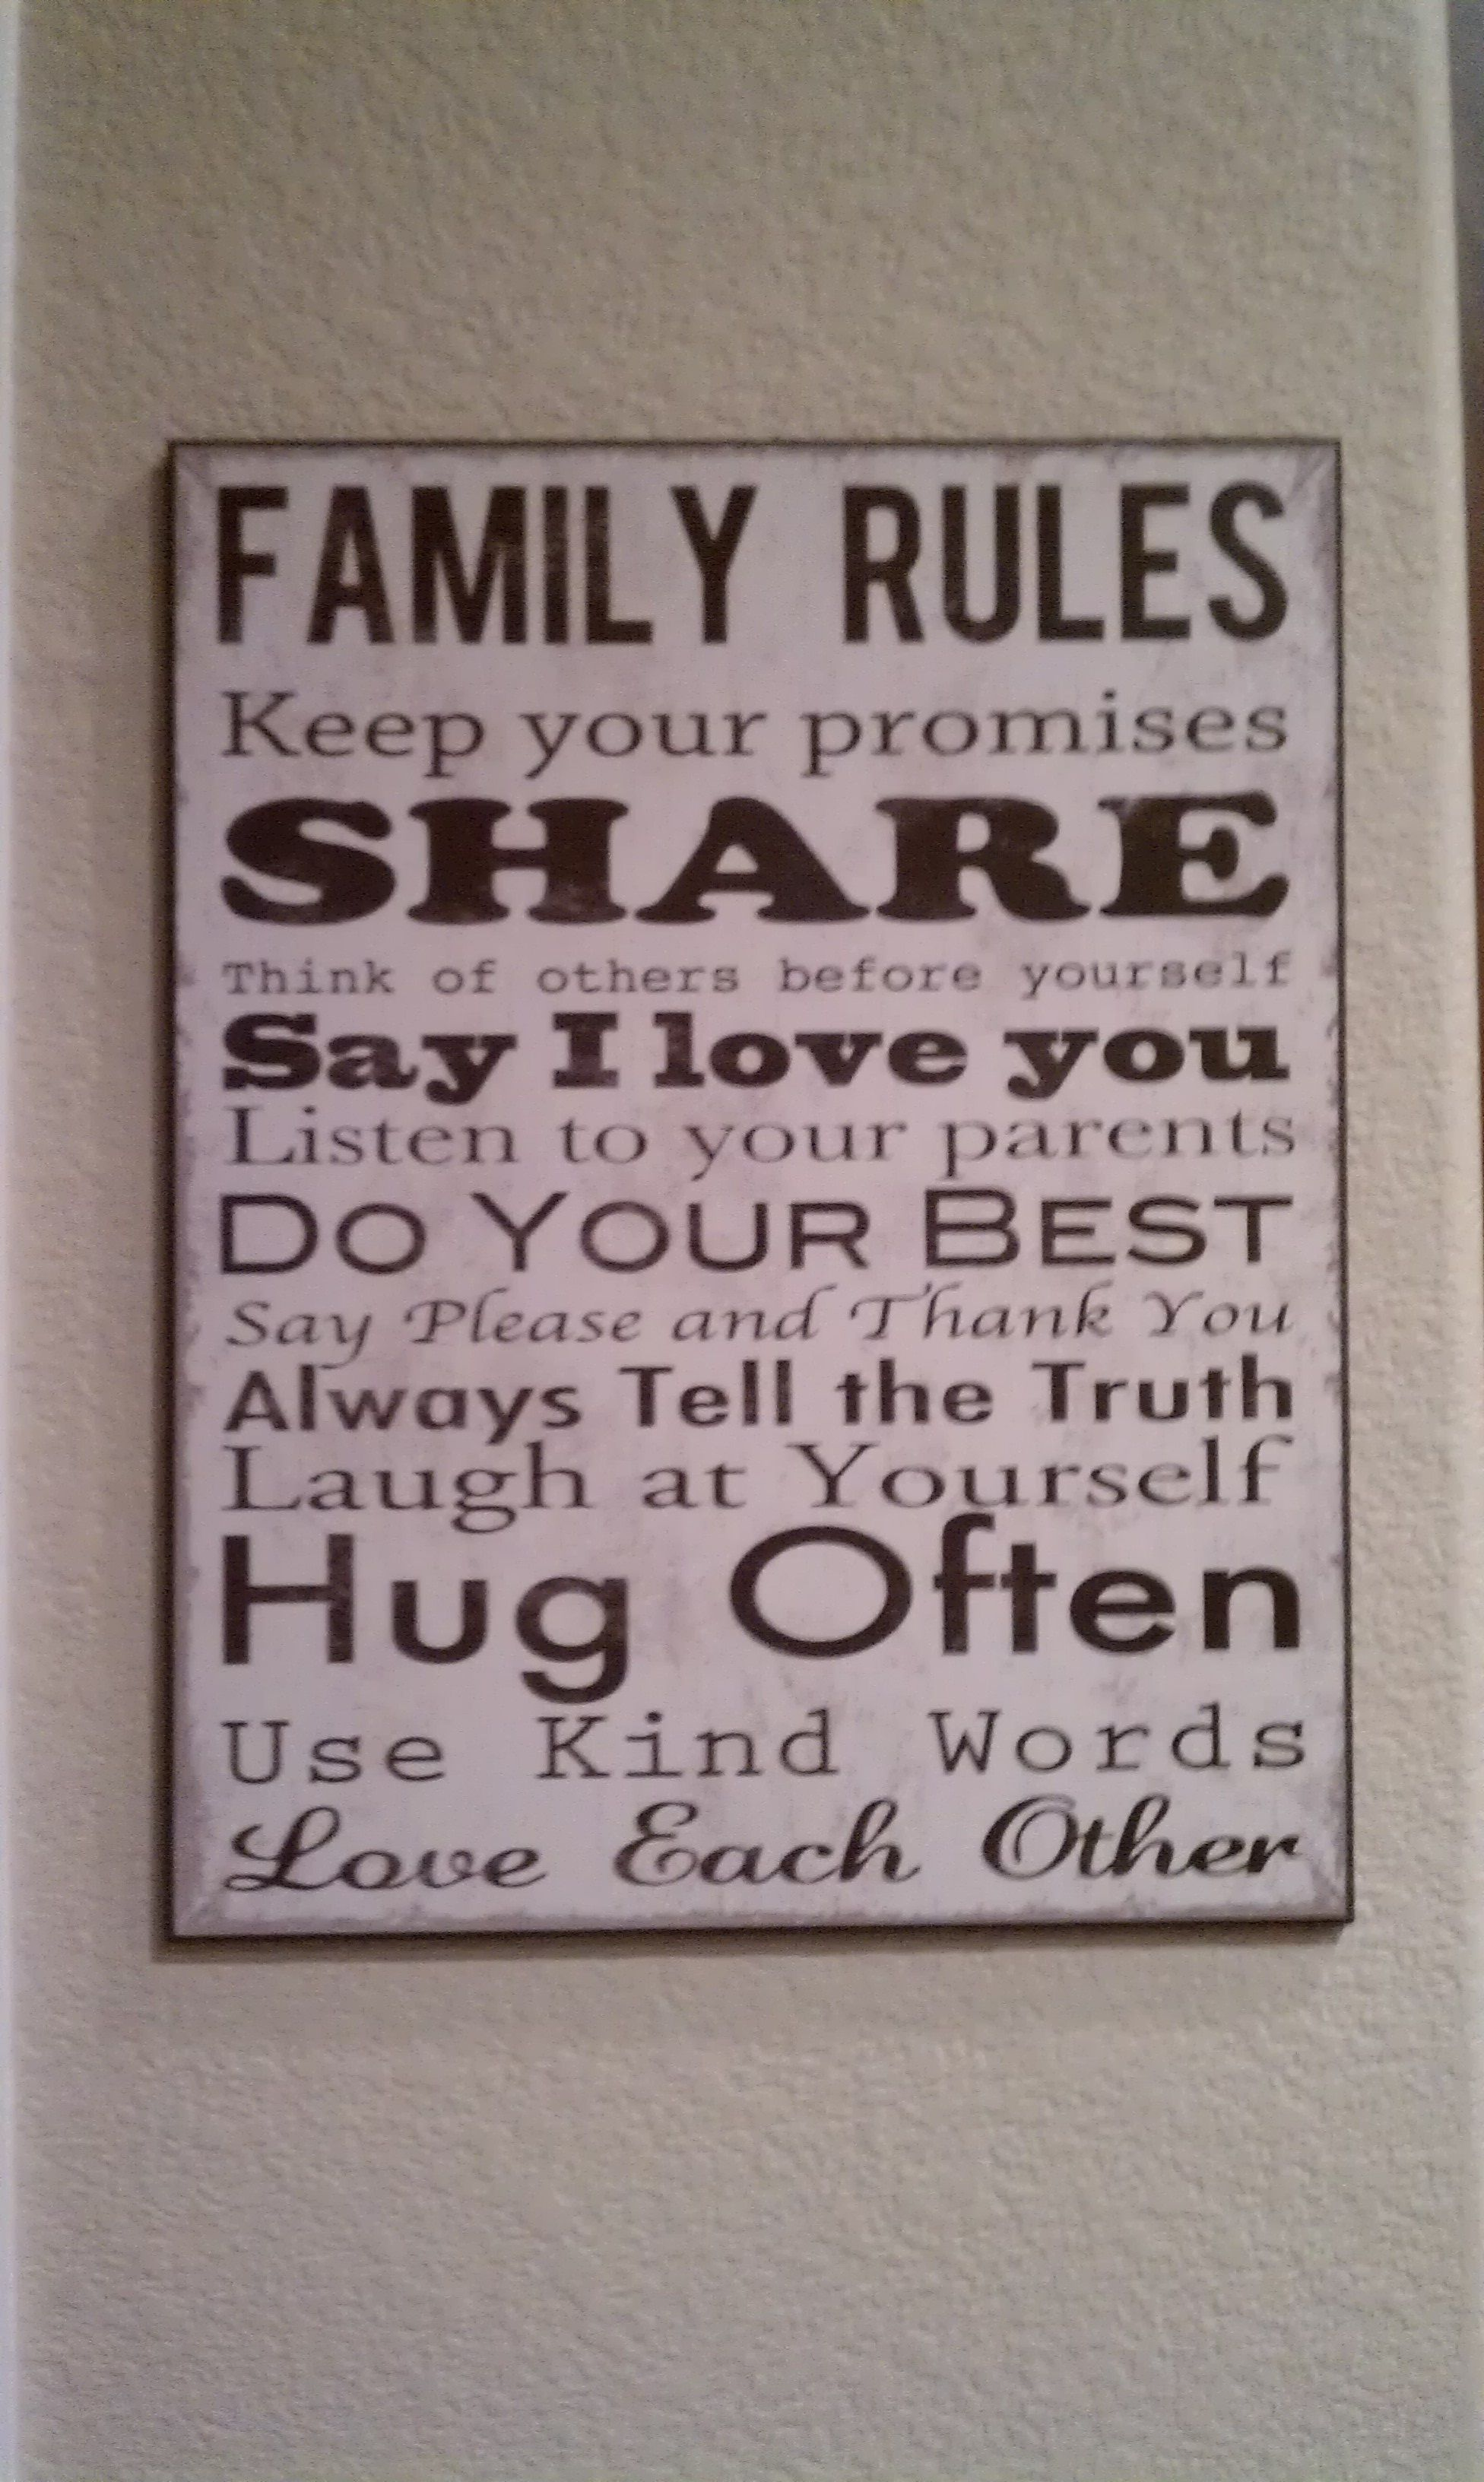 This is at my friends Darrell & Sandi's house! I had to pin it!